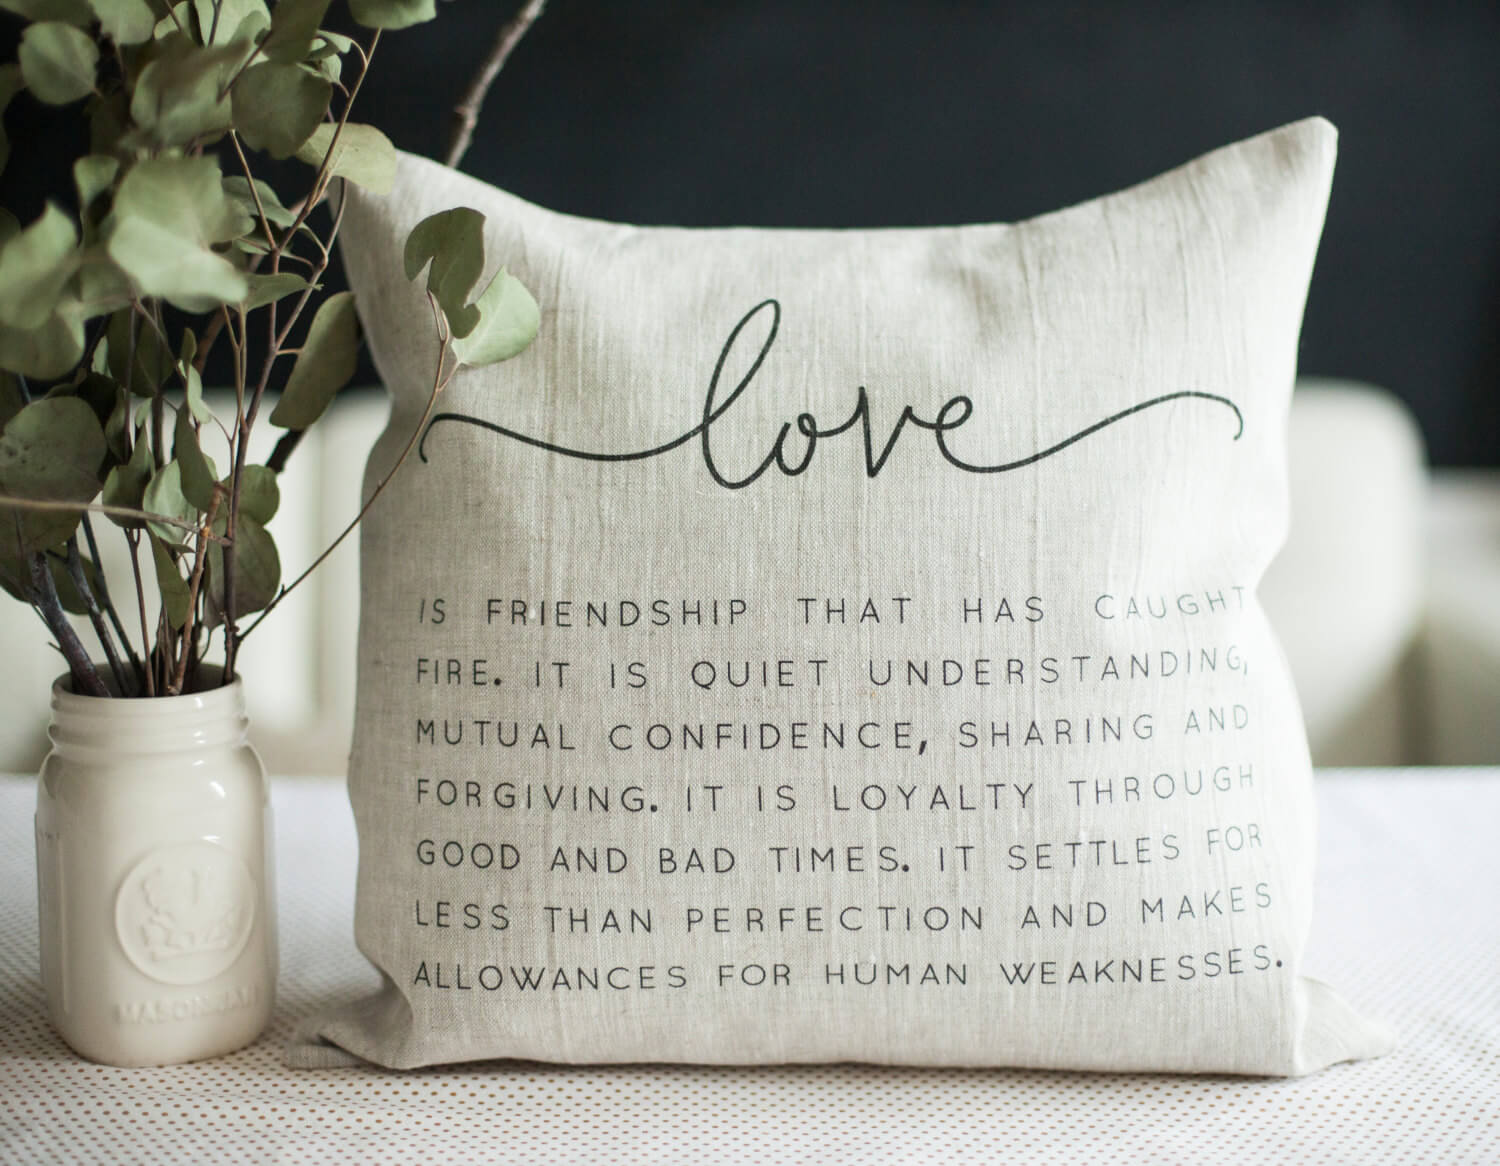 Love quote linen pillow